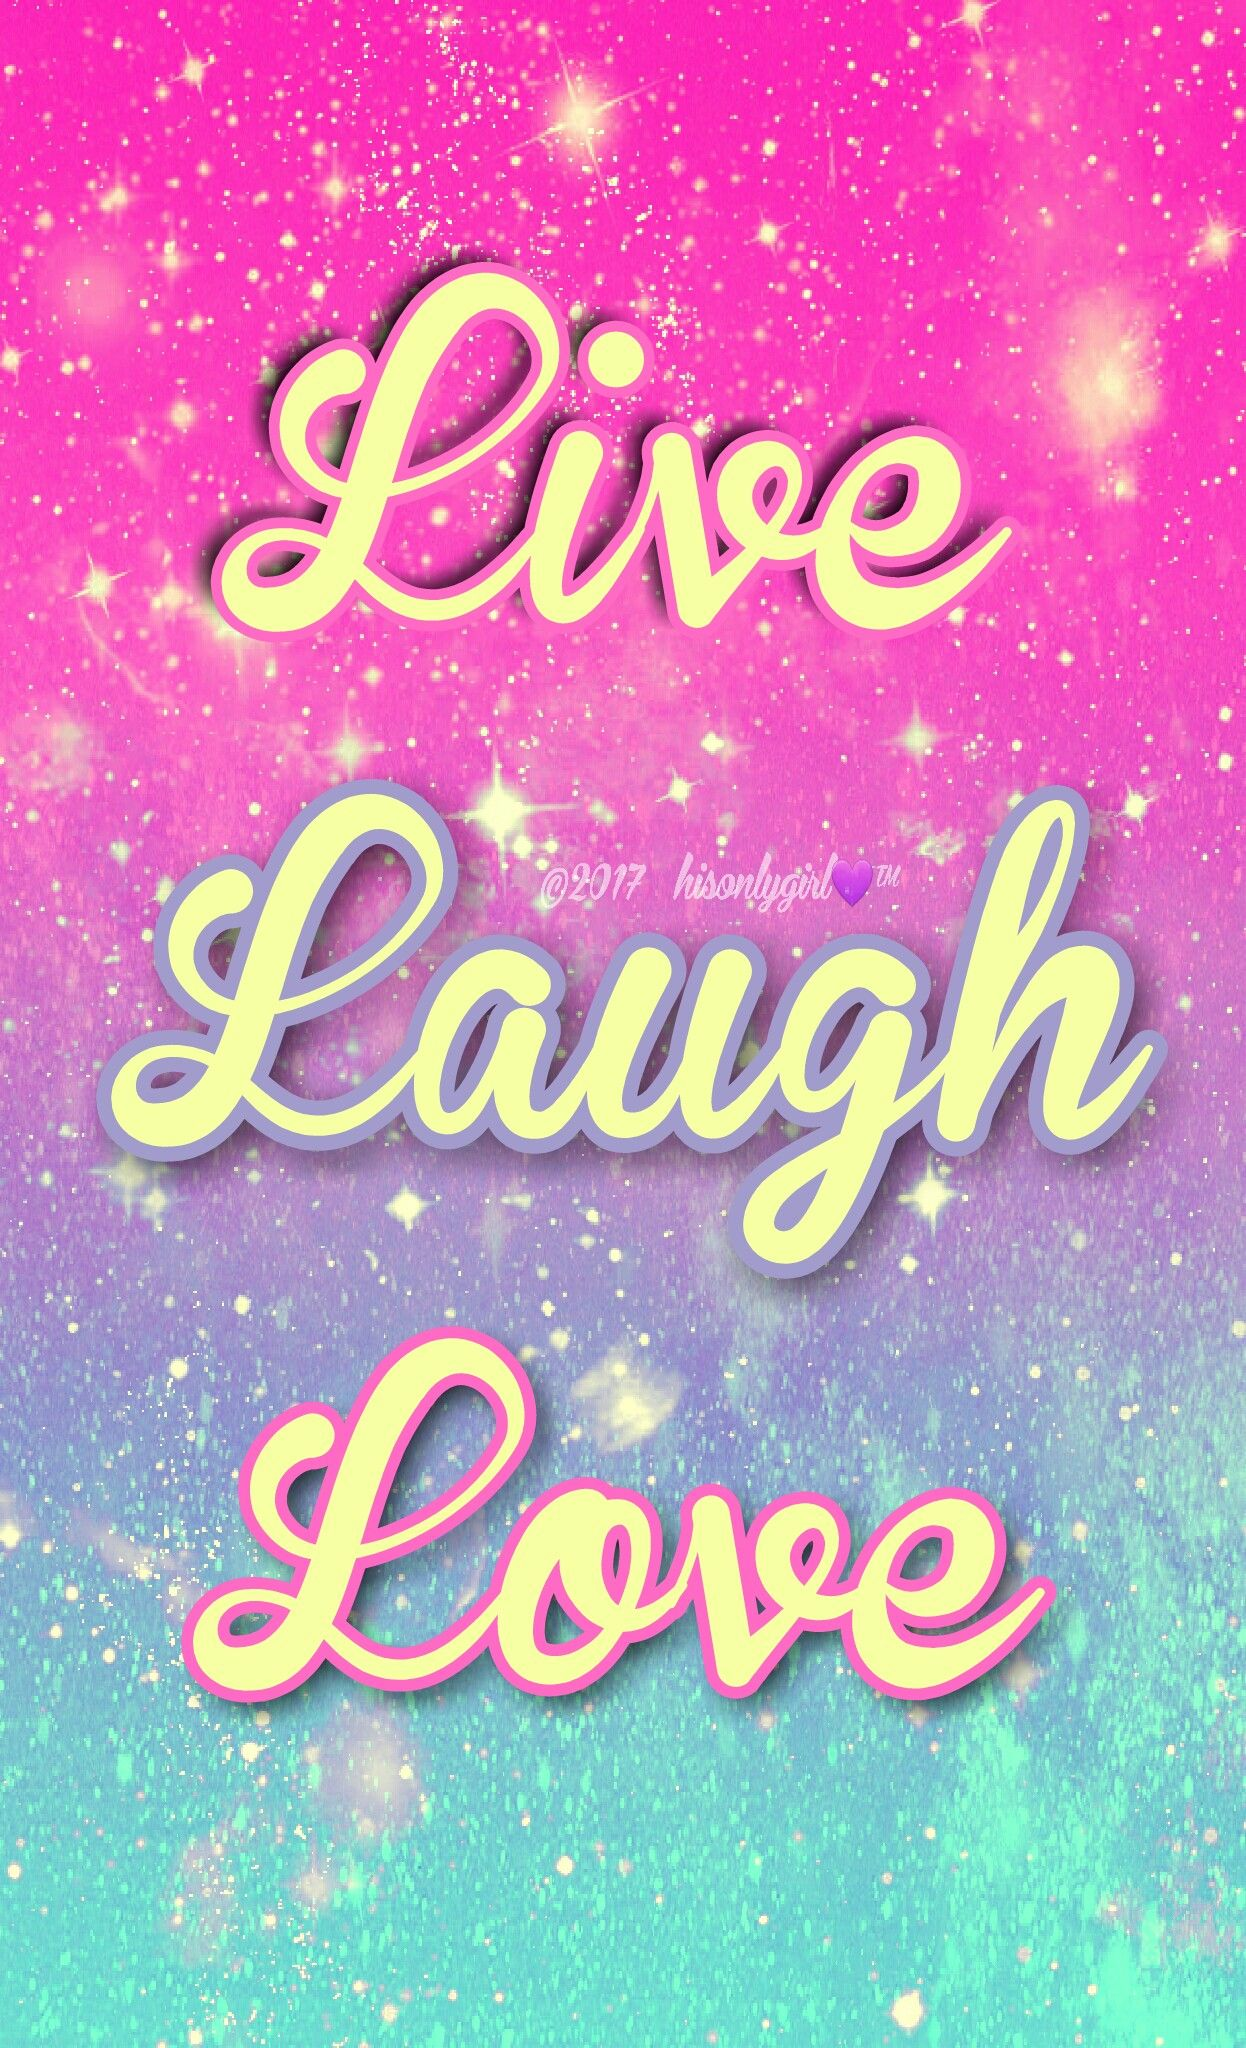 Download Wallpaper Love Android - 3b4643904bc71b8a066d4cc3159dc1fd  Pictures_45661.jpg